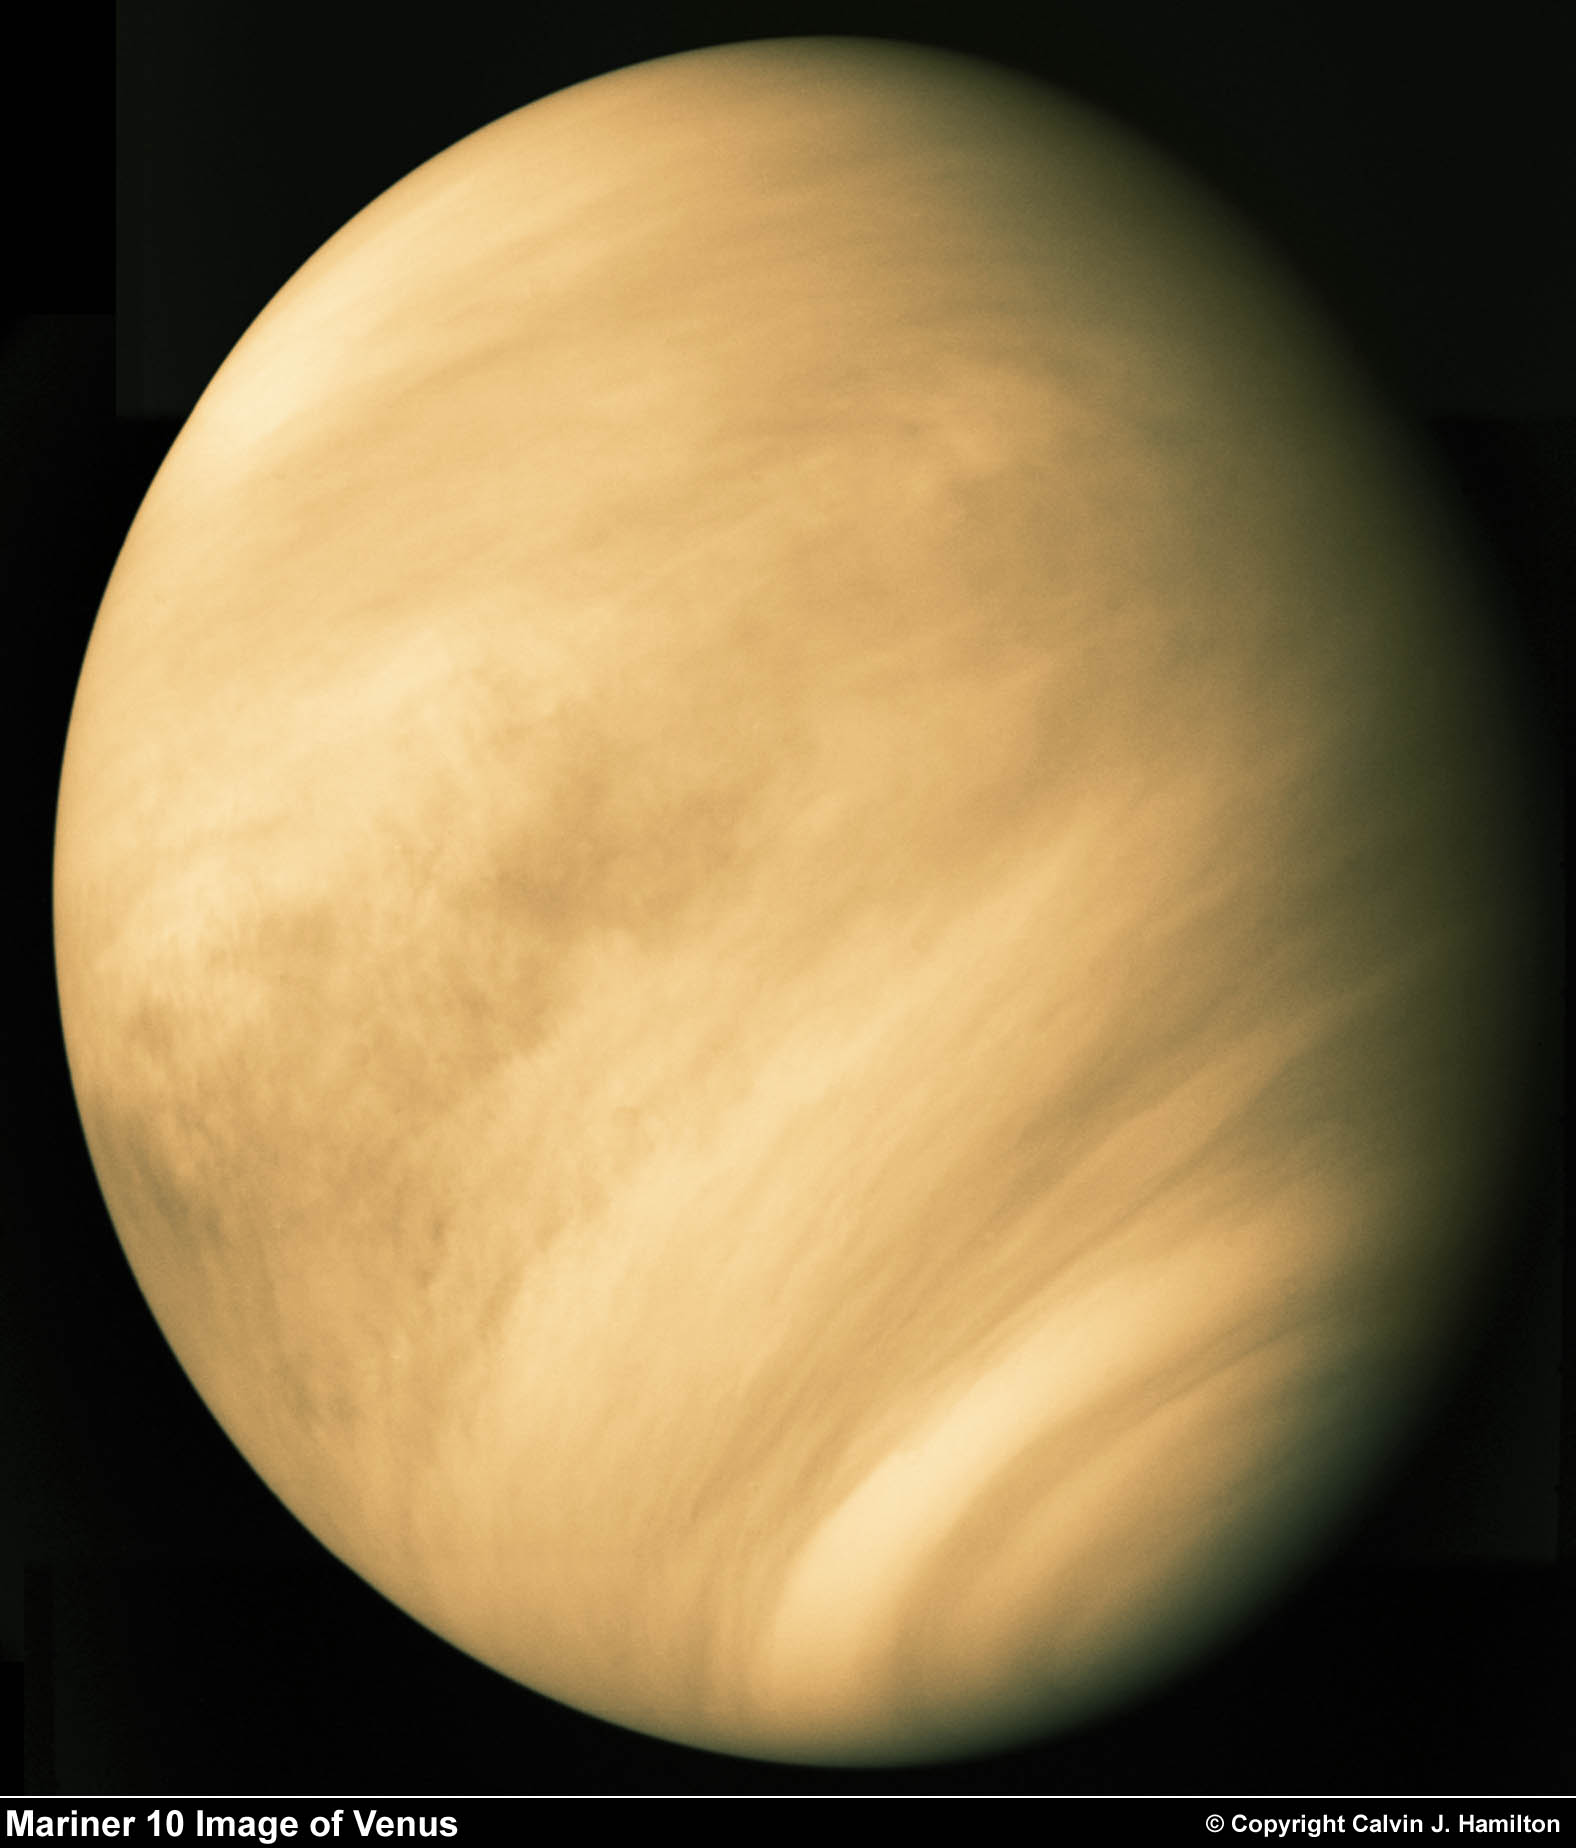 Mariner image of Venus, full disk: ircamera.as.arizona.edu/NatSci102/NatSci102/lectures/venus.htm